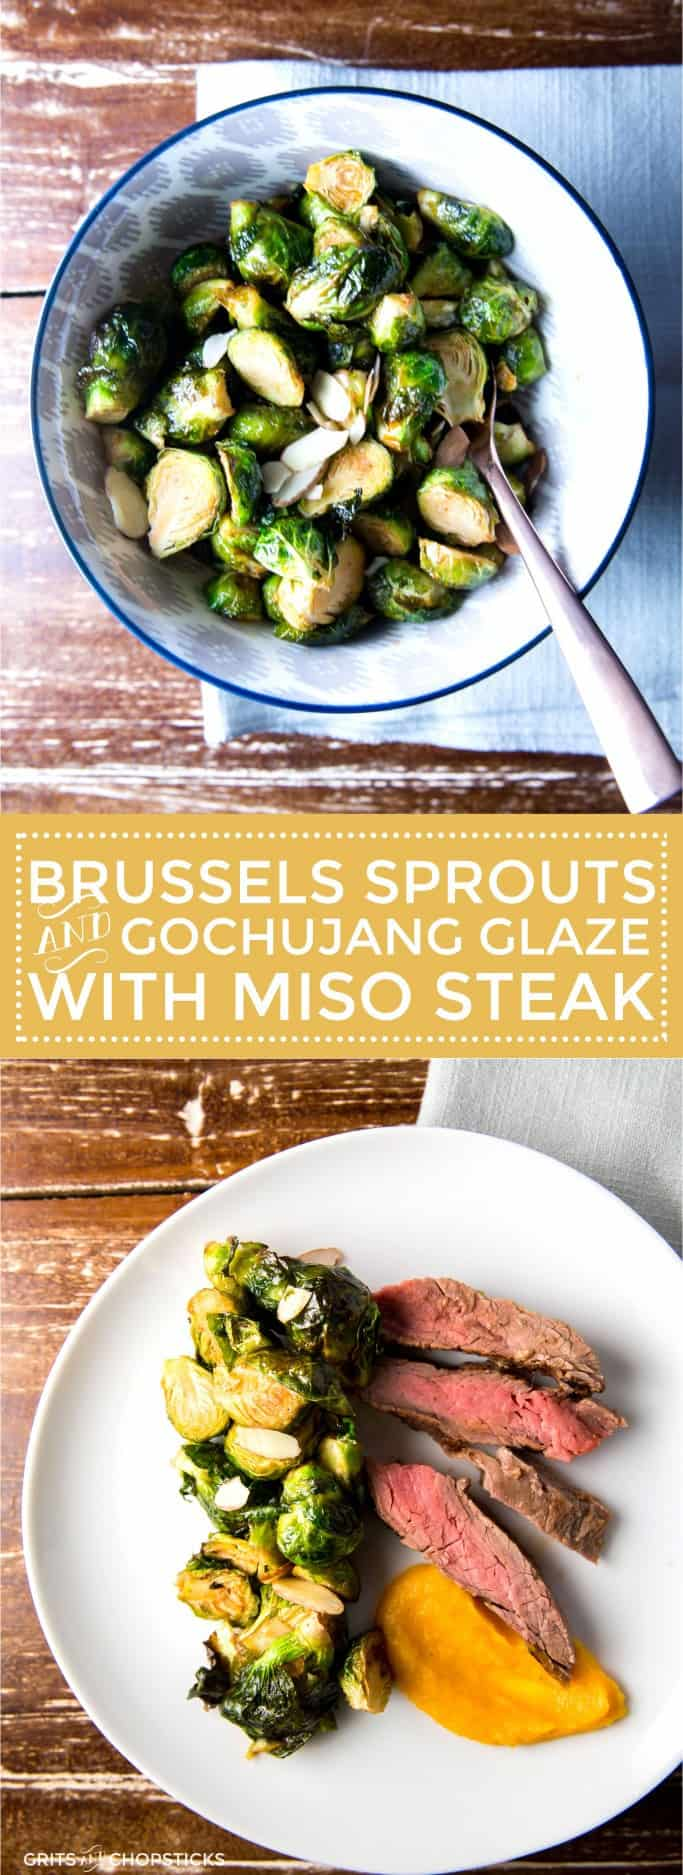 brussels-sprouts-pinterest-final